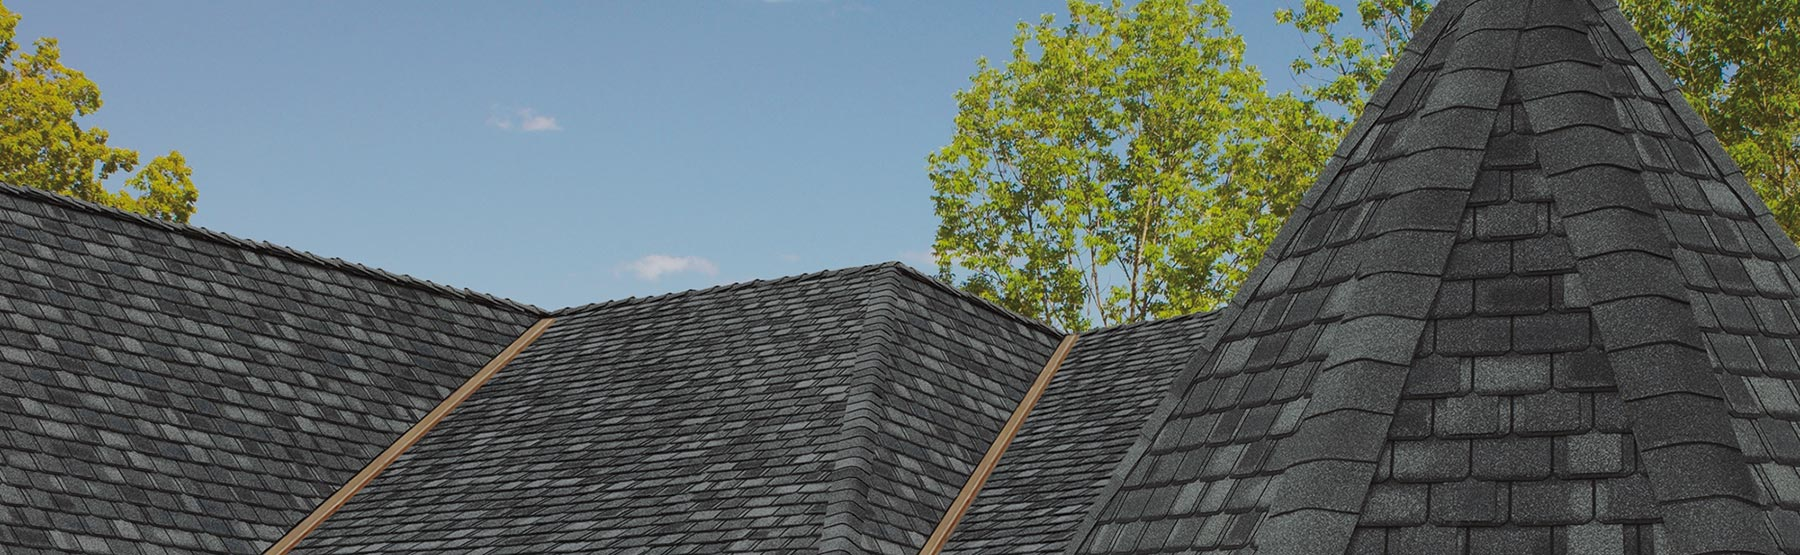 helpful-roof-resources-site1